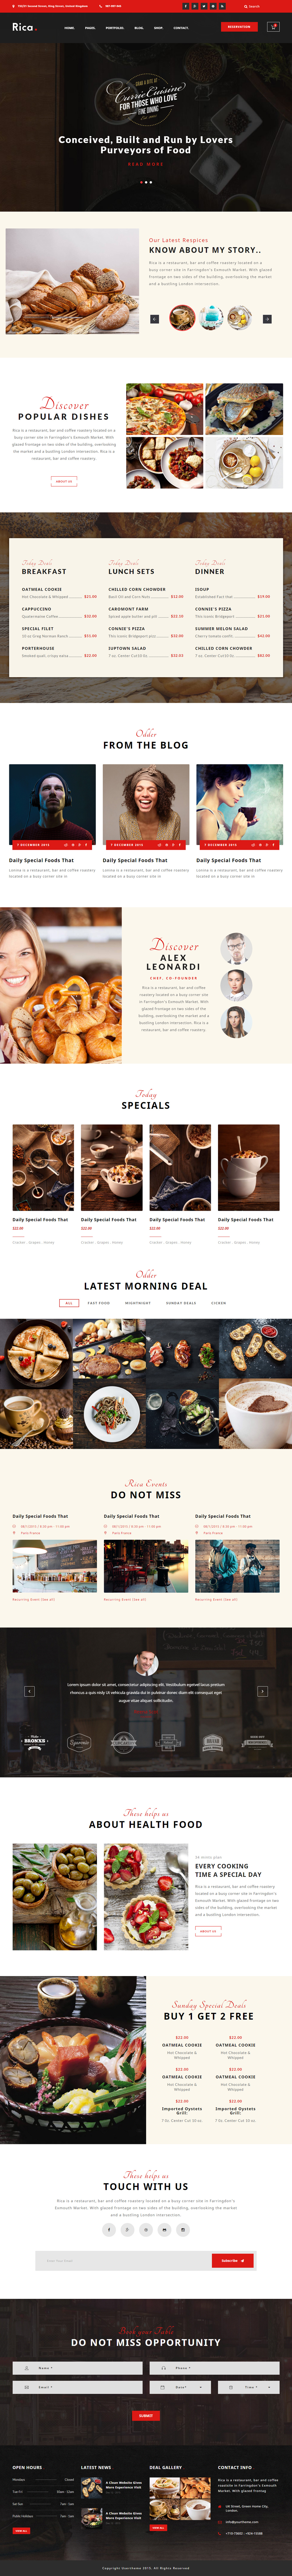 Rica is Premium Responsive Retina HTML5 #Restaurant #template. Parallax Scrolling. Bootstrap 3 Framework. #FlatDesign. Test free demo at: http://www.responsivemiracle.com/rica-premium-reponsive-restaurant-and-cafe-html5-template/